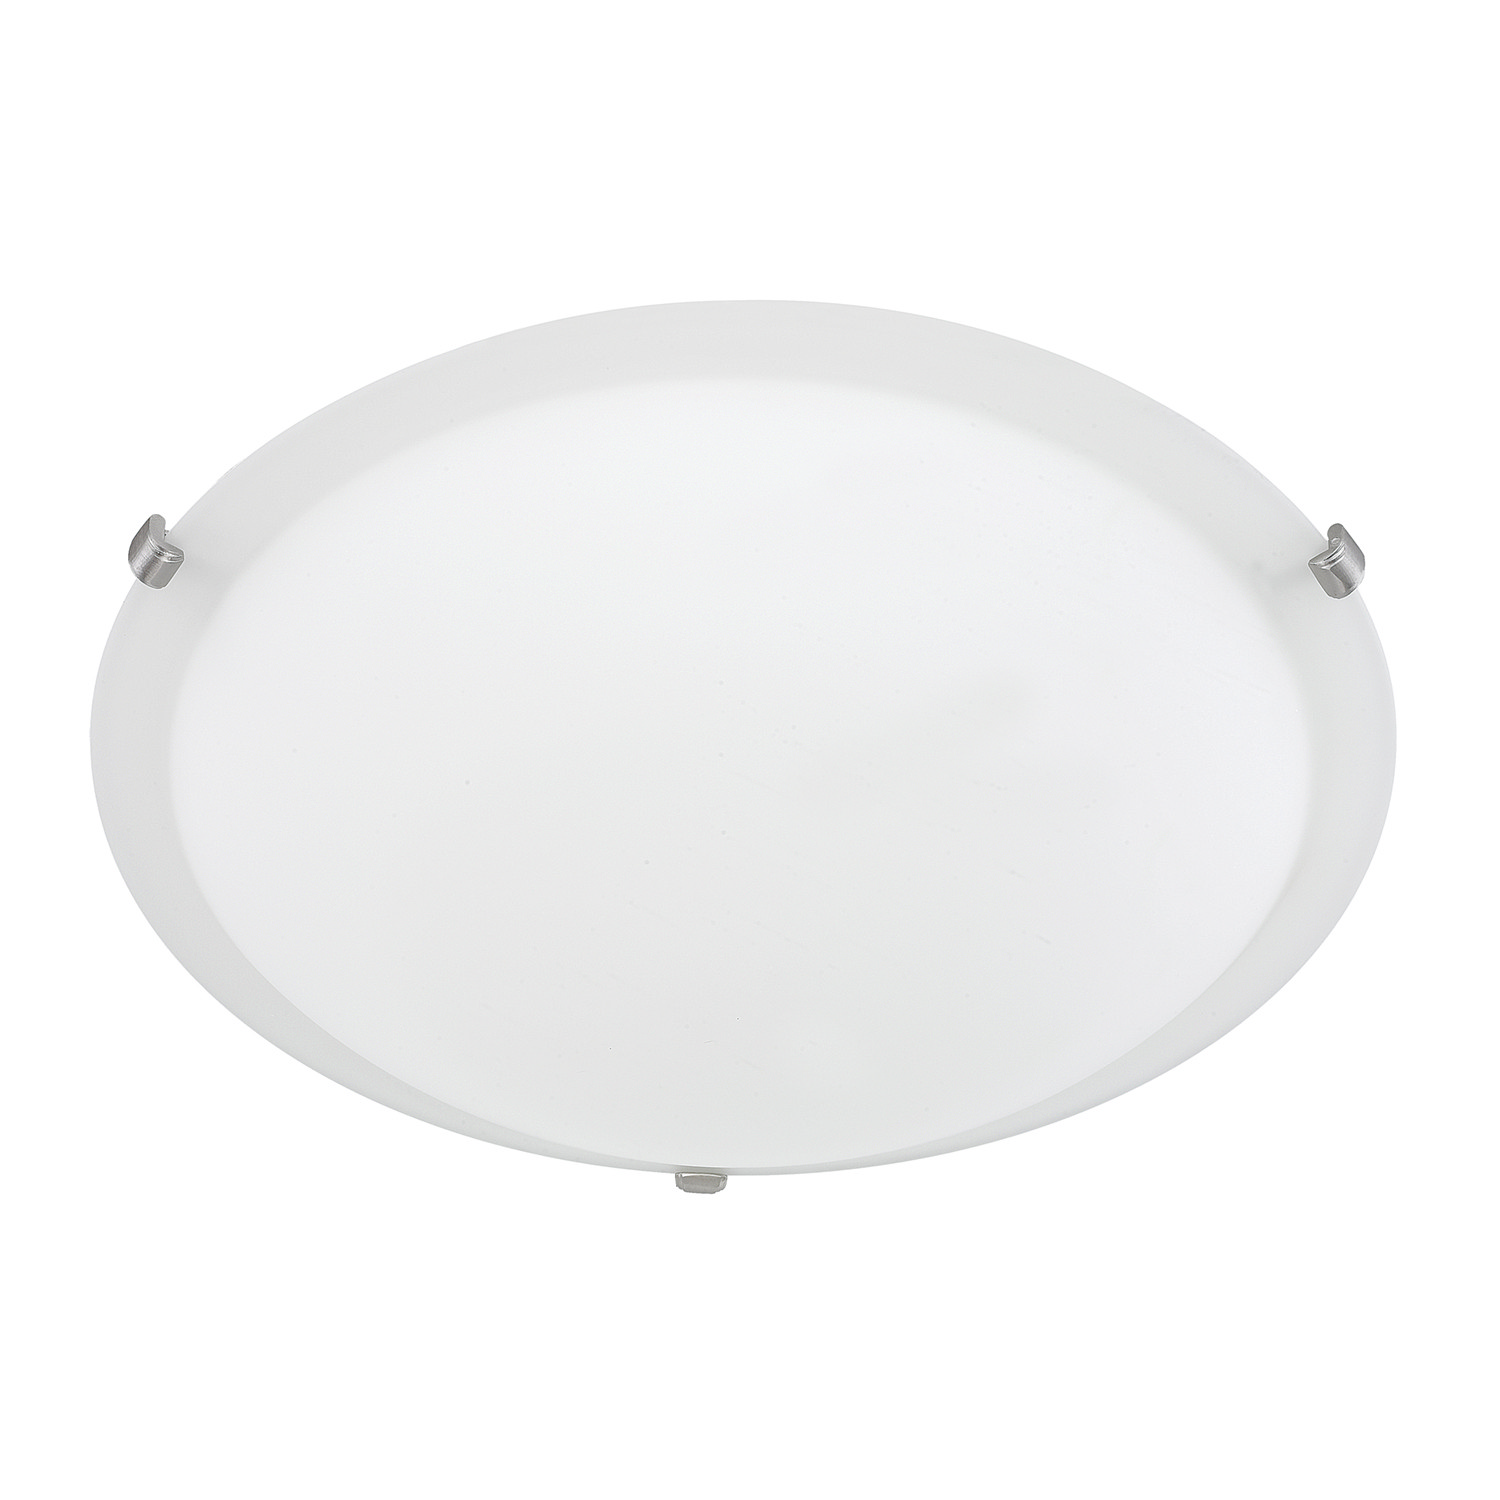 Four Light Ceiling Fixture